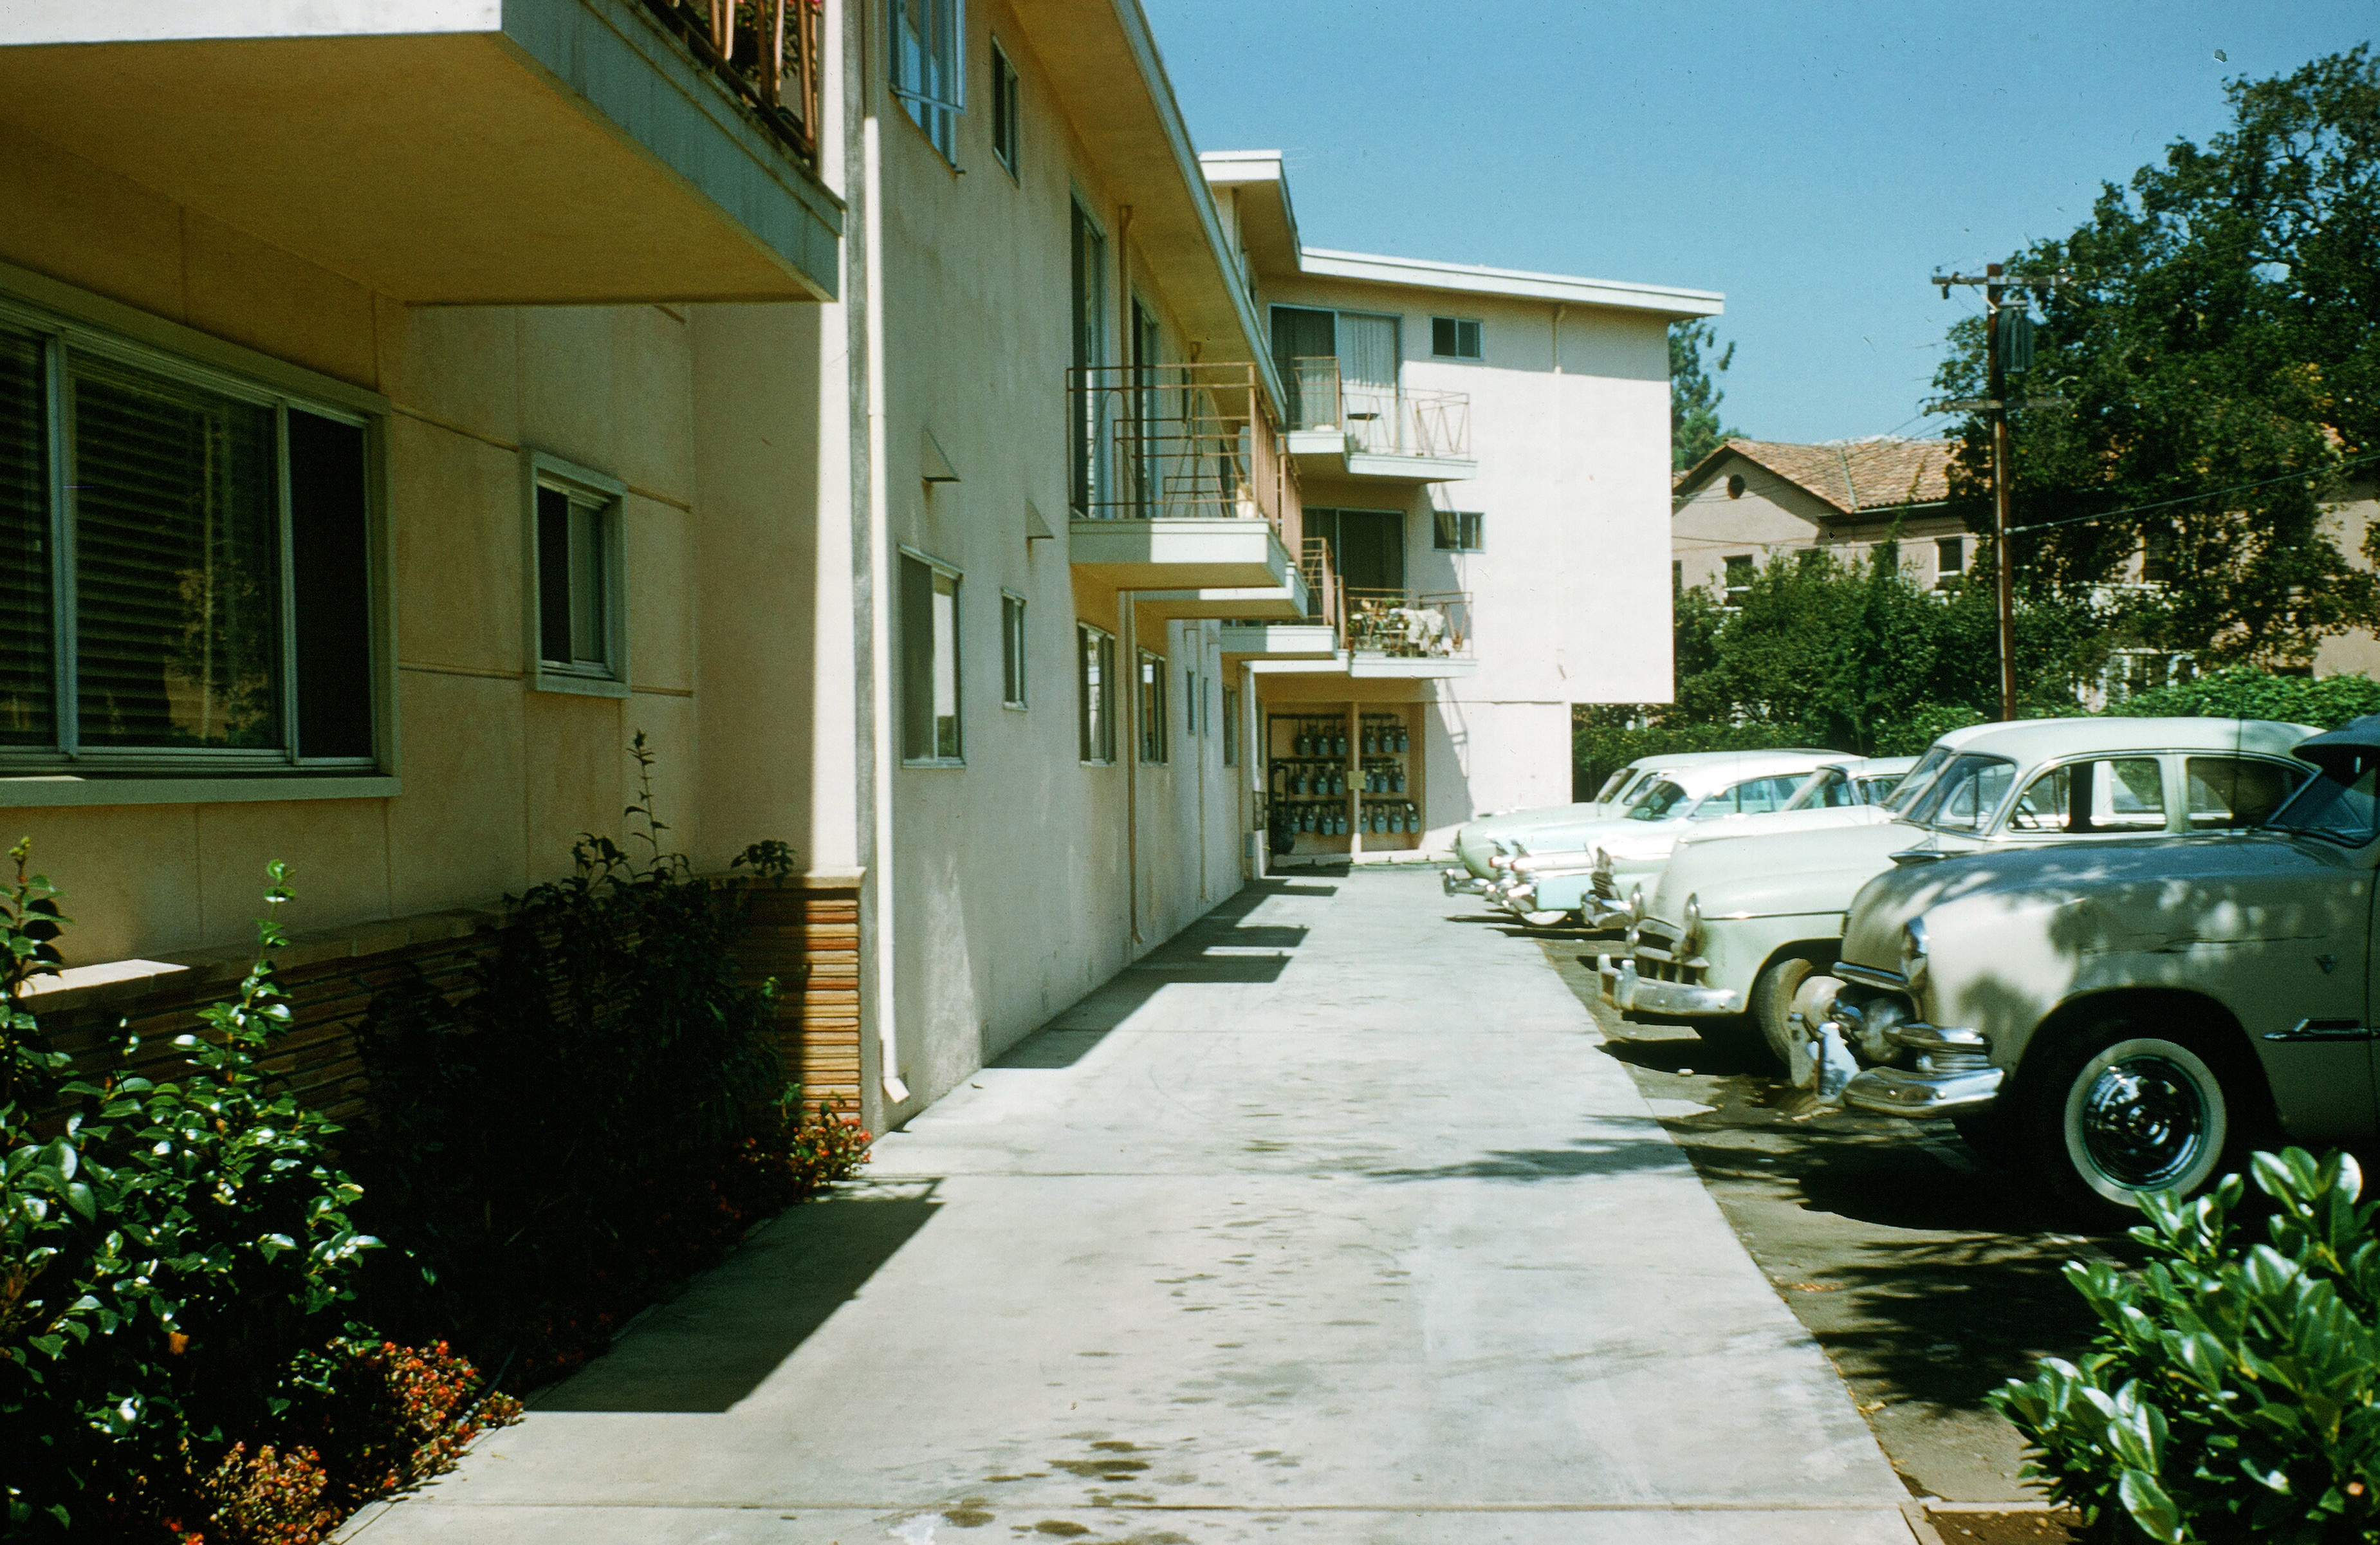 Coleman avenue apartments, september 1960 photo